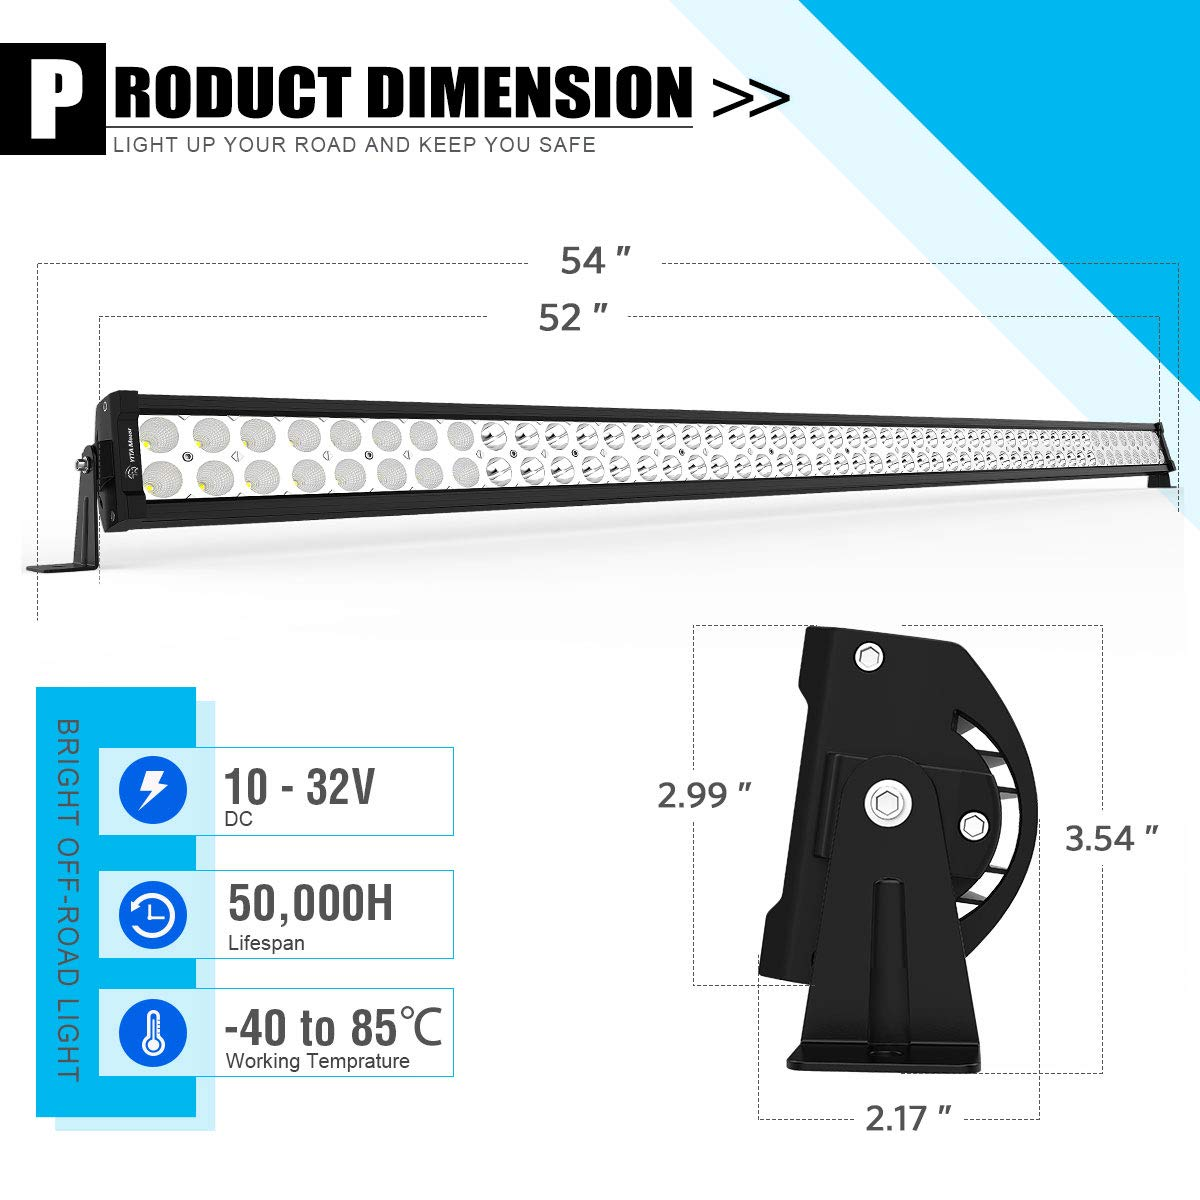 Waterproof Offroad Lights for Jeep 3 Year Warranty LED Light Bar YITAMOTOR 52 Inch Light Bars with Mounting Brackets compatible for Jeep Wrangler TJ with Wiring Harness